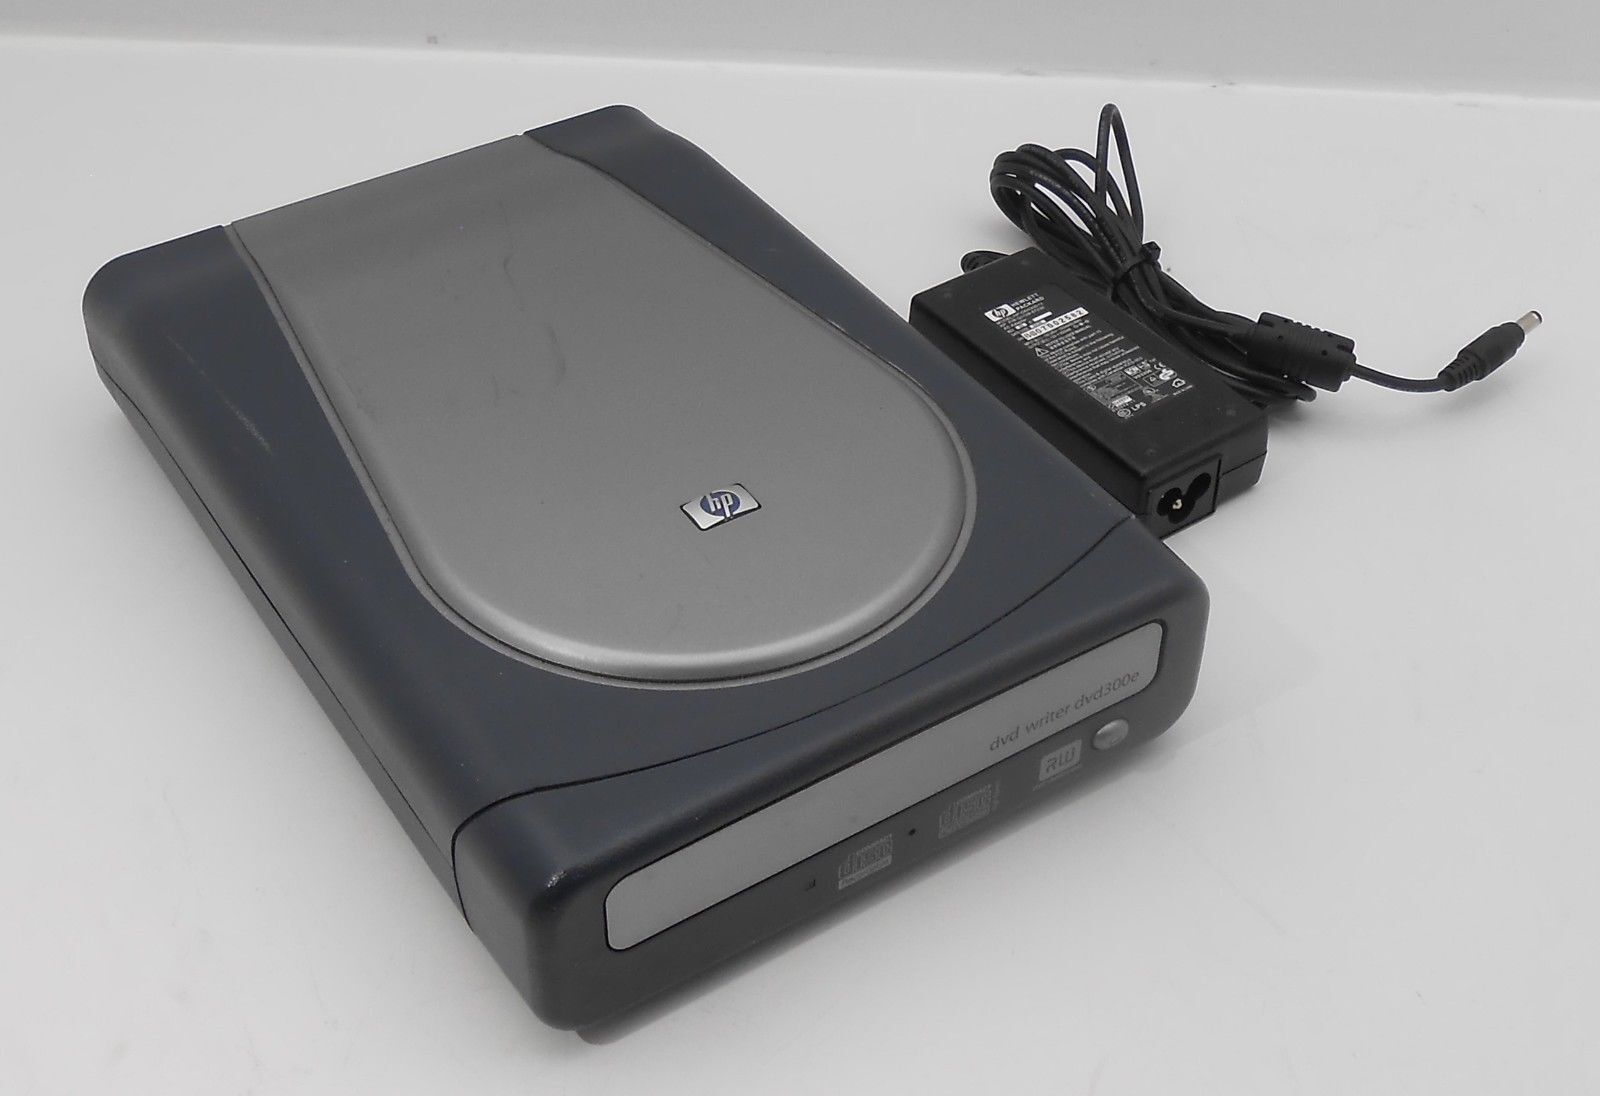 USB 2.0 External CD//DVD Drive for Compaq presario cq40-518au